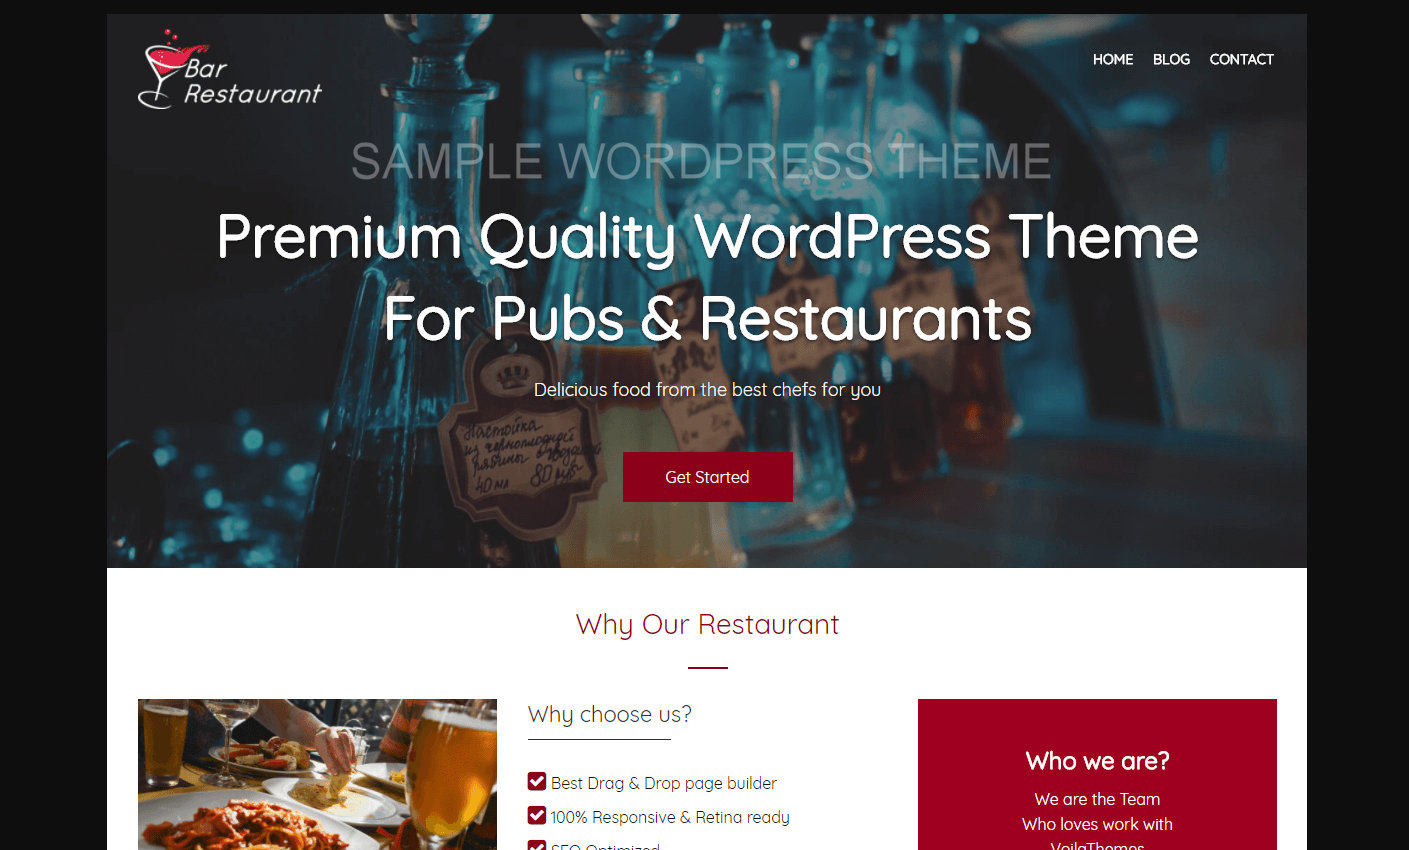 Theme sample with a restaurant.